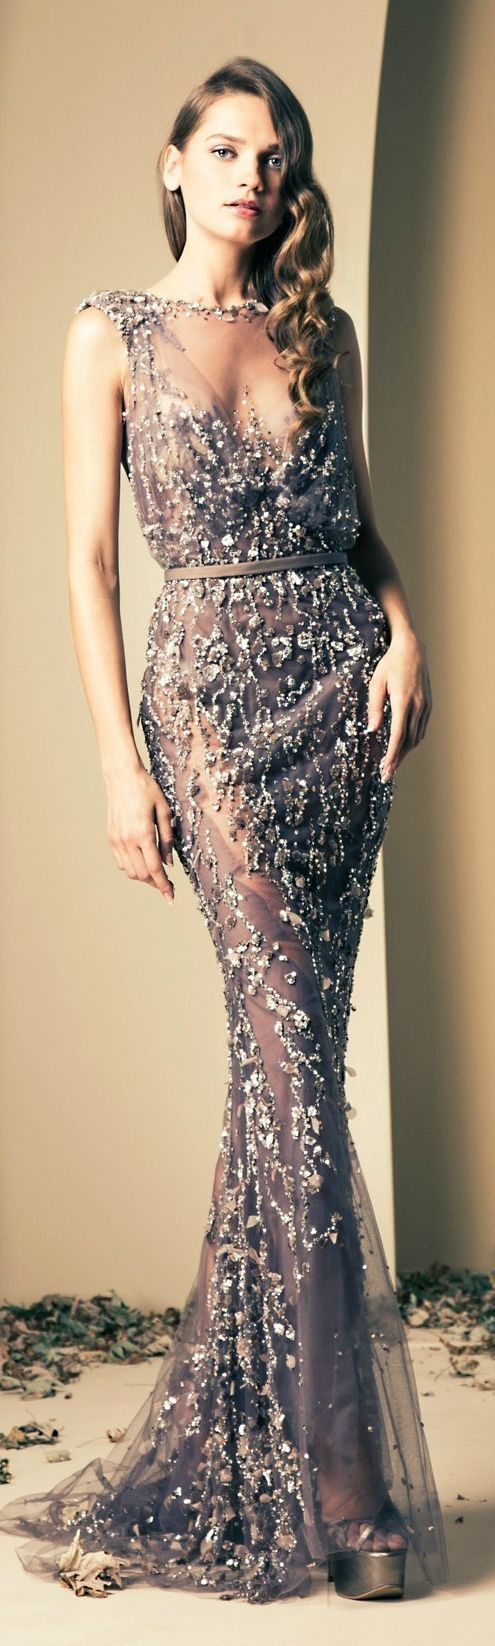 The best images about vestidos on pinterest red carpet fashion